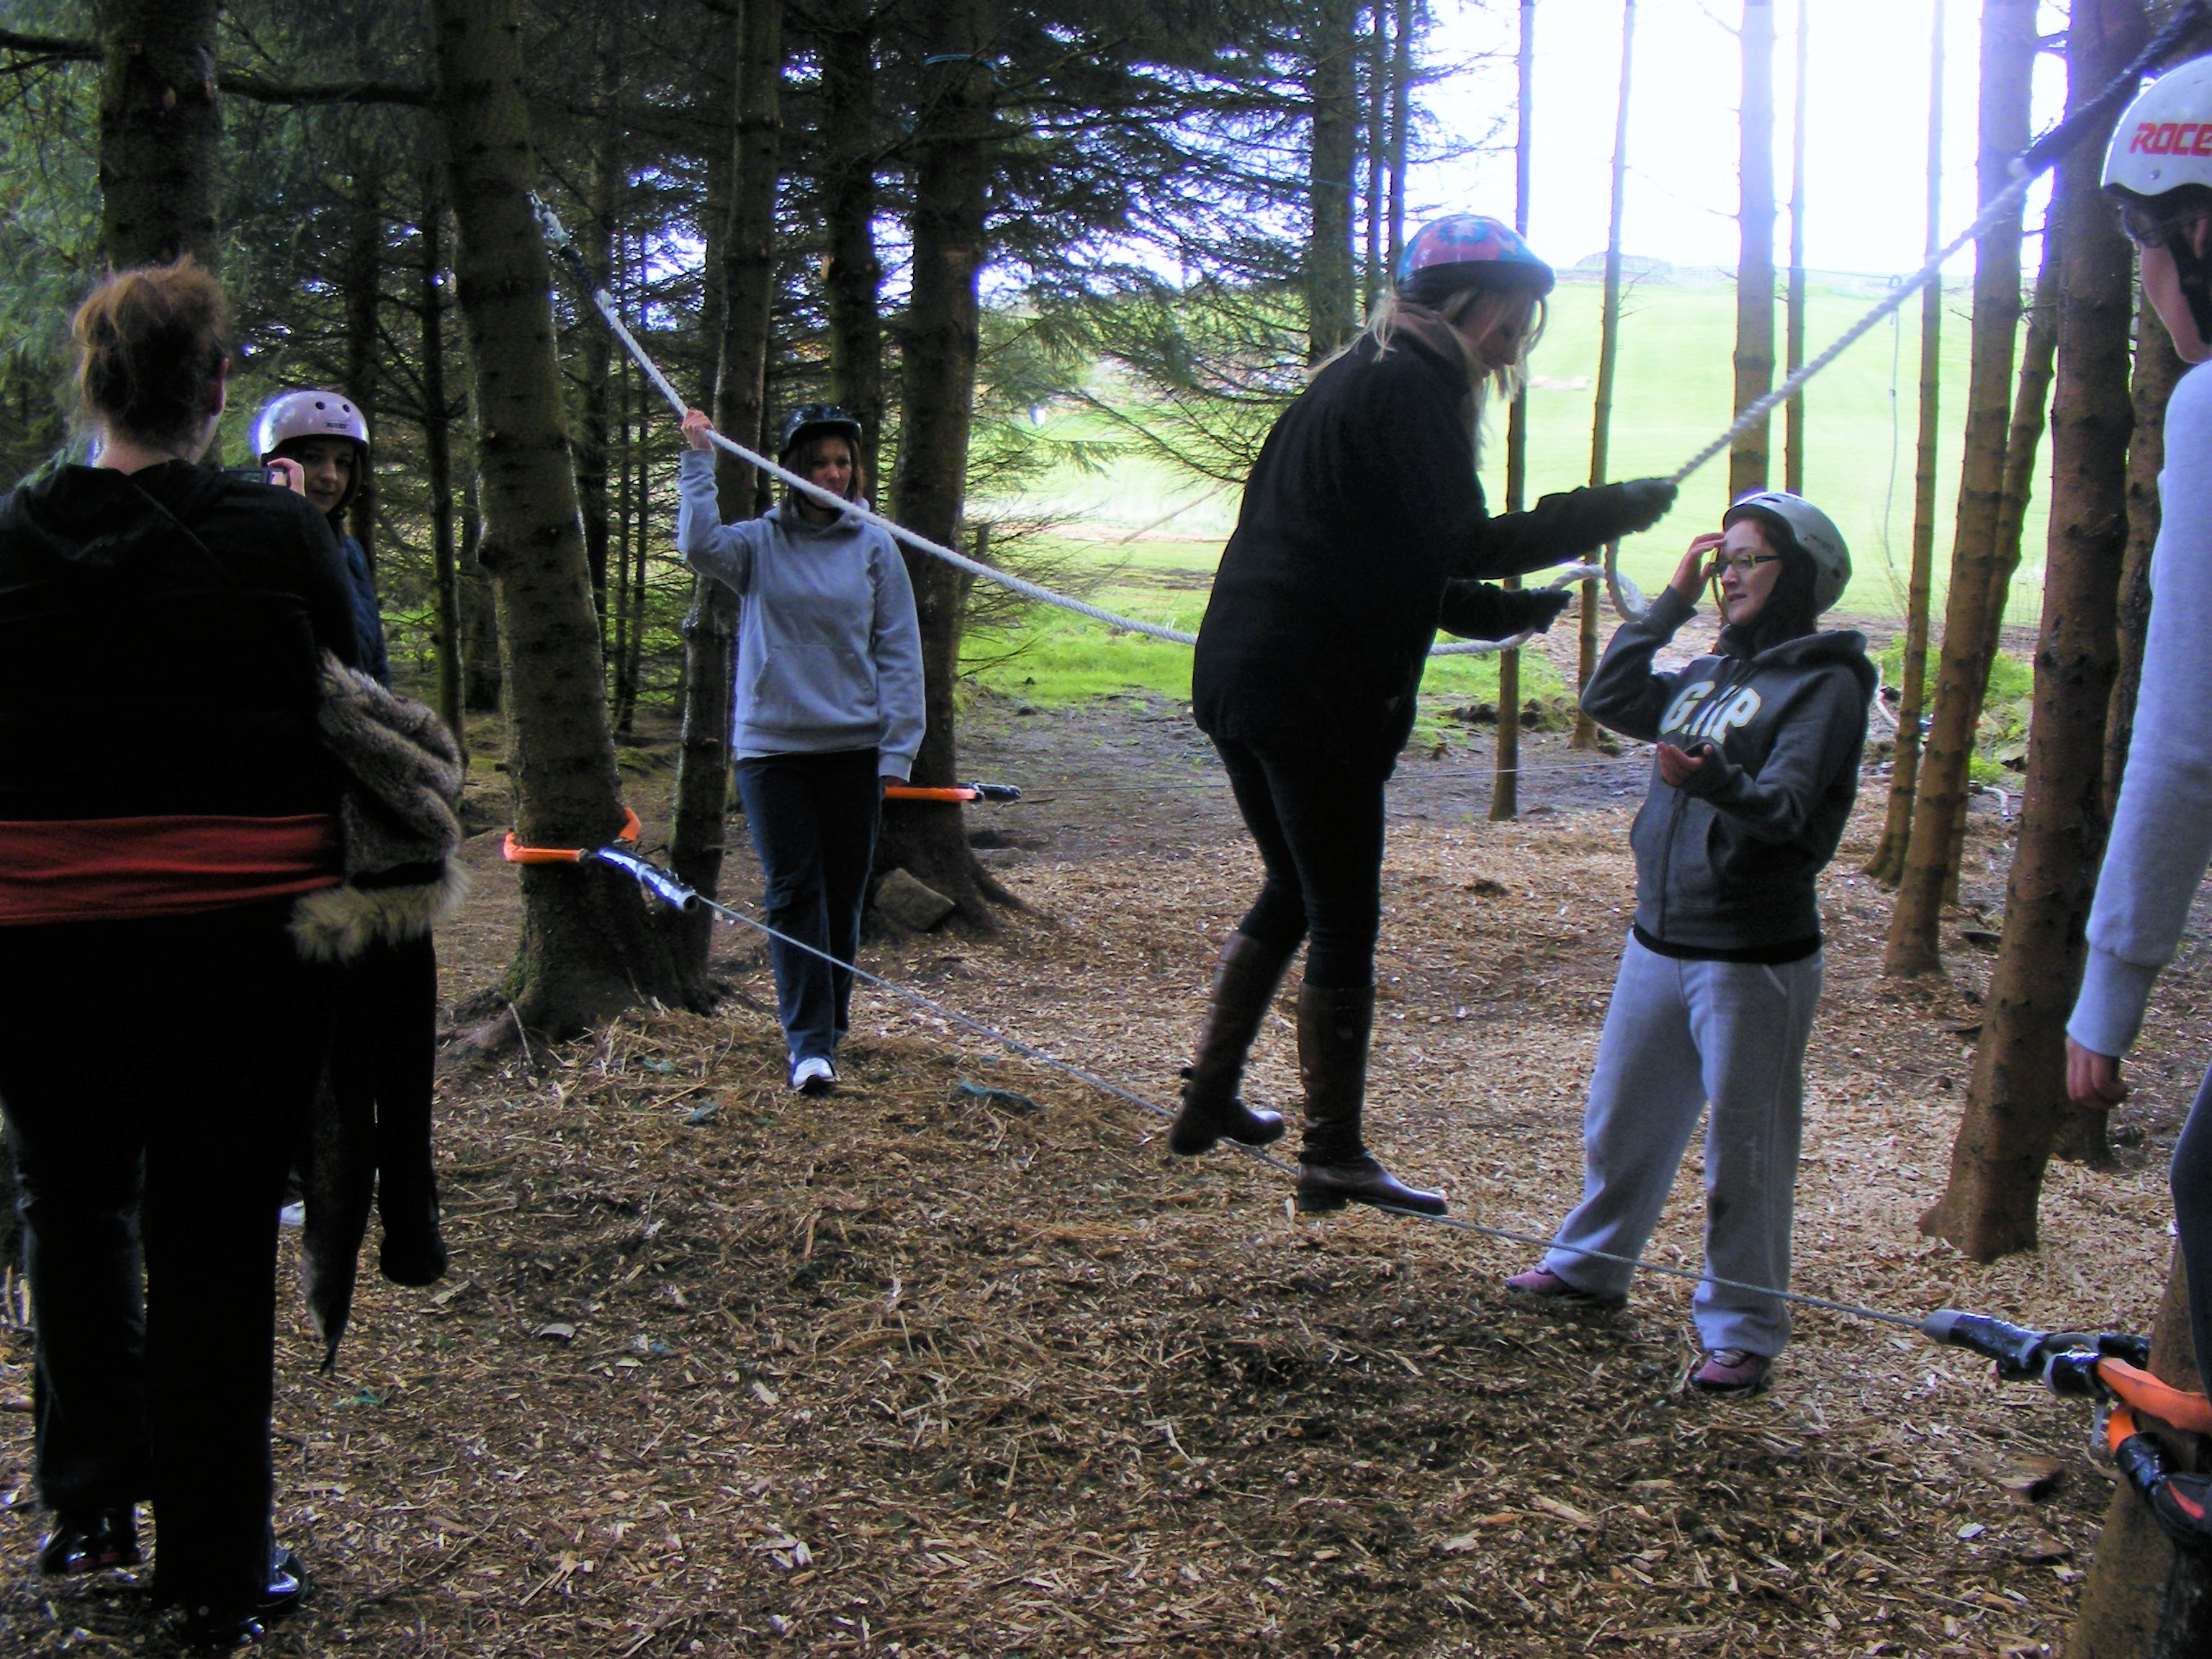 Group doing low ropes